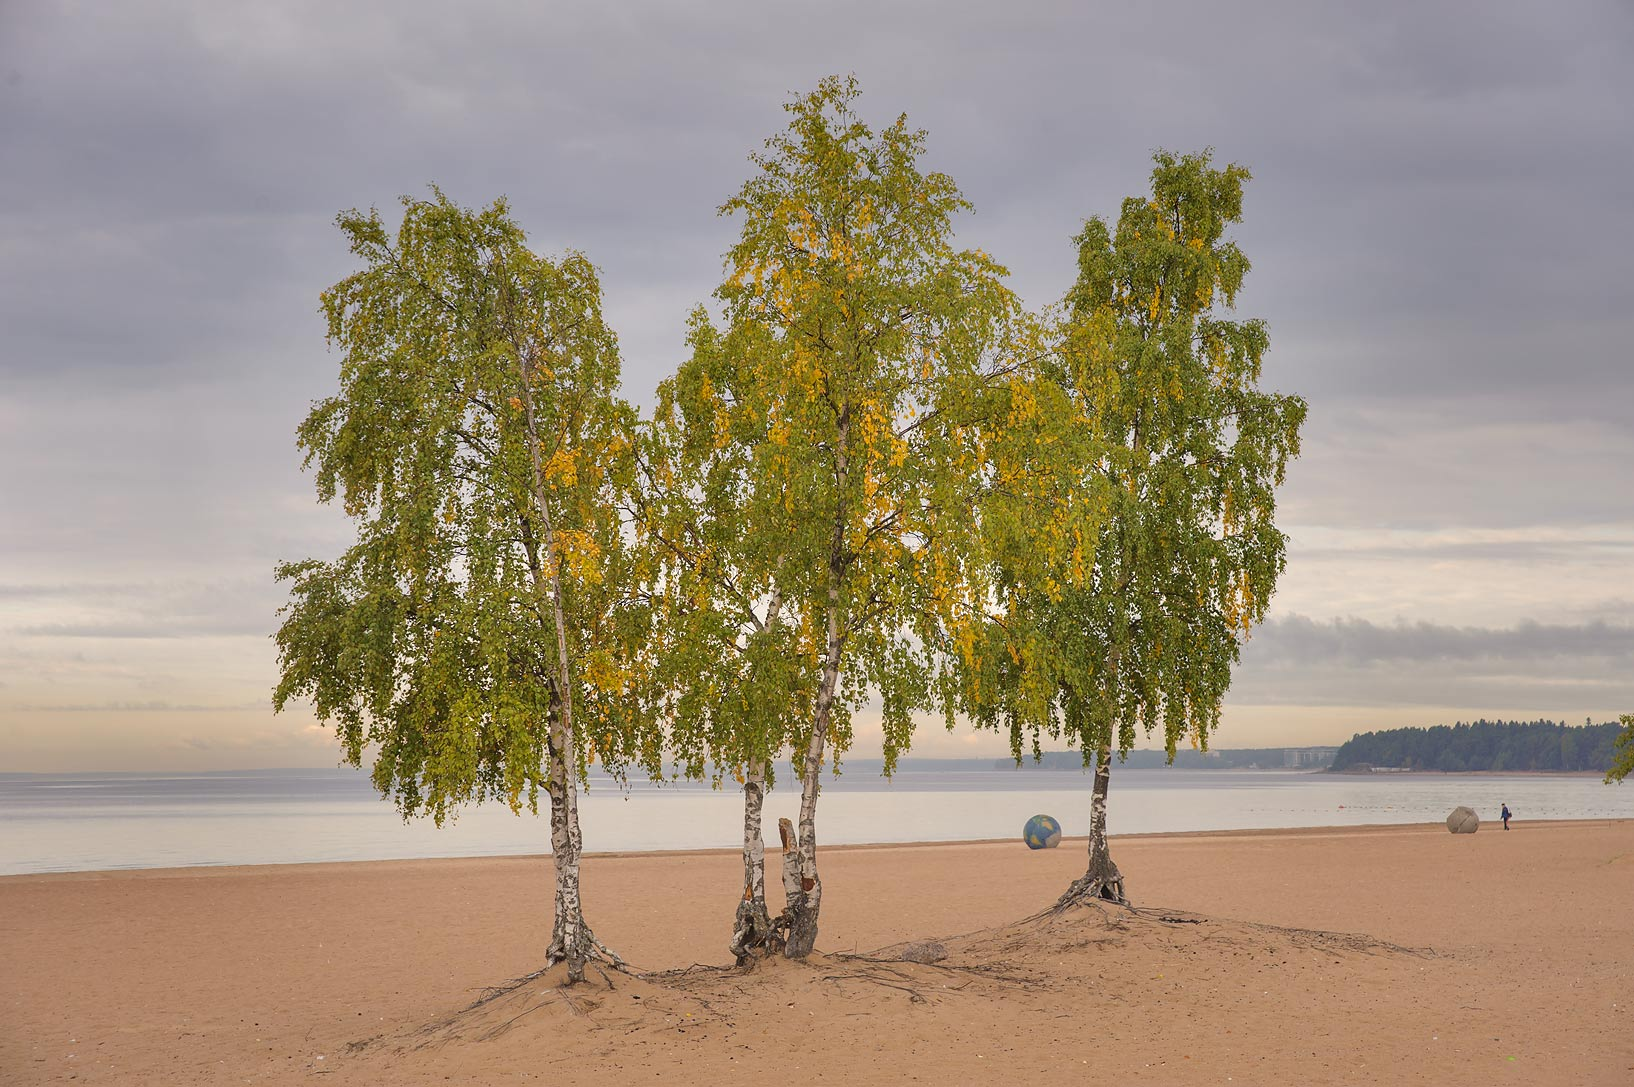 Birches on Laskovy Beach in Solnechnoe, west from St.Petersburg. Russia